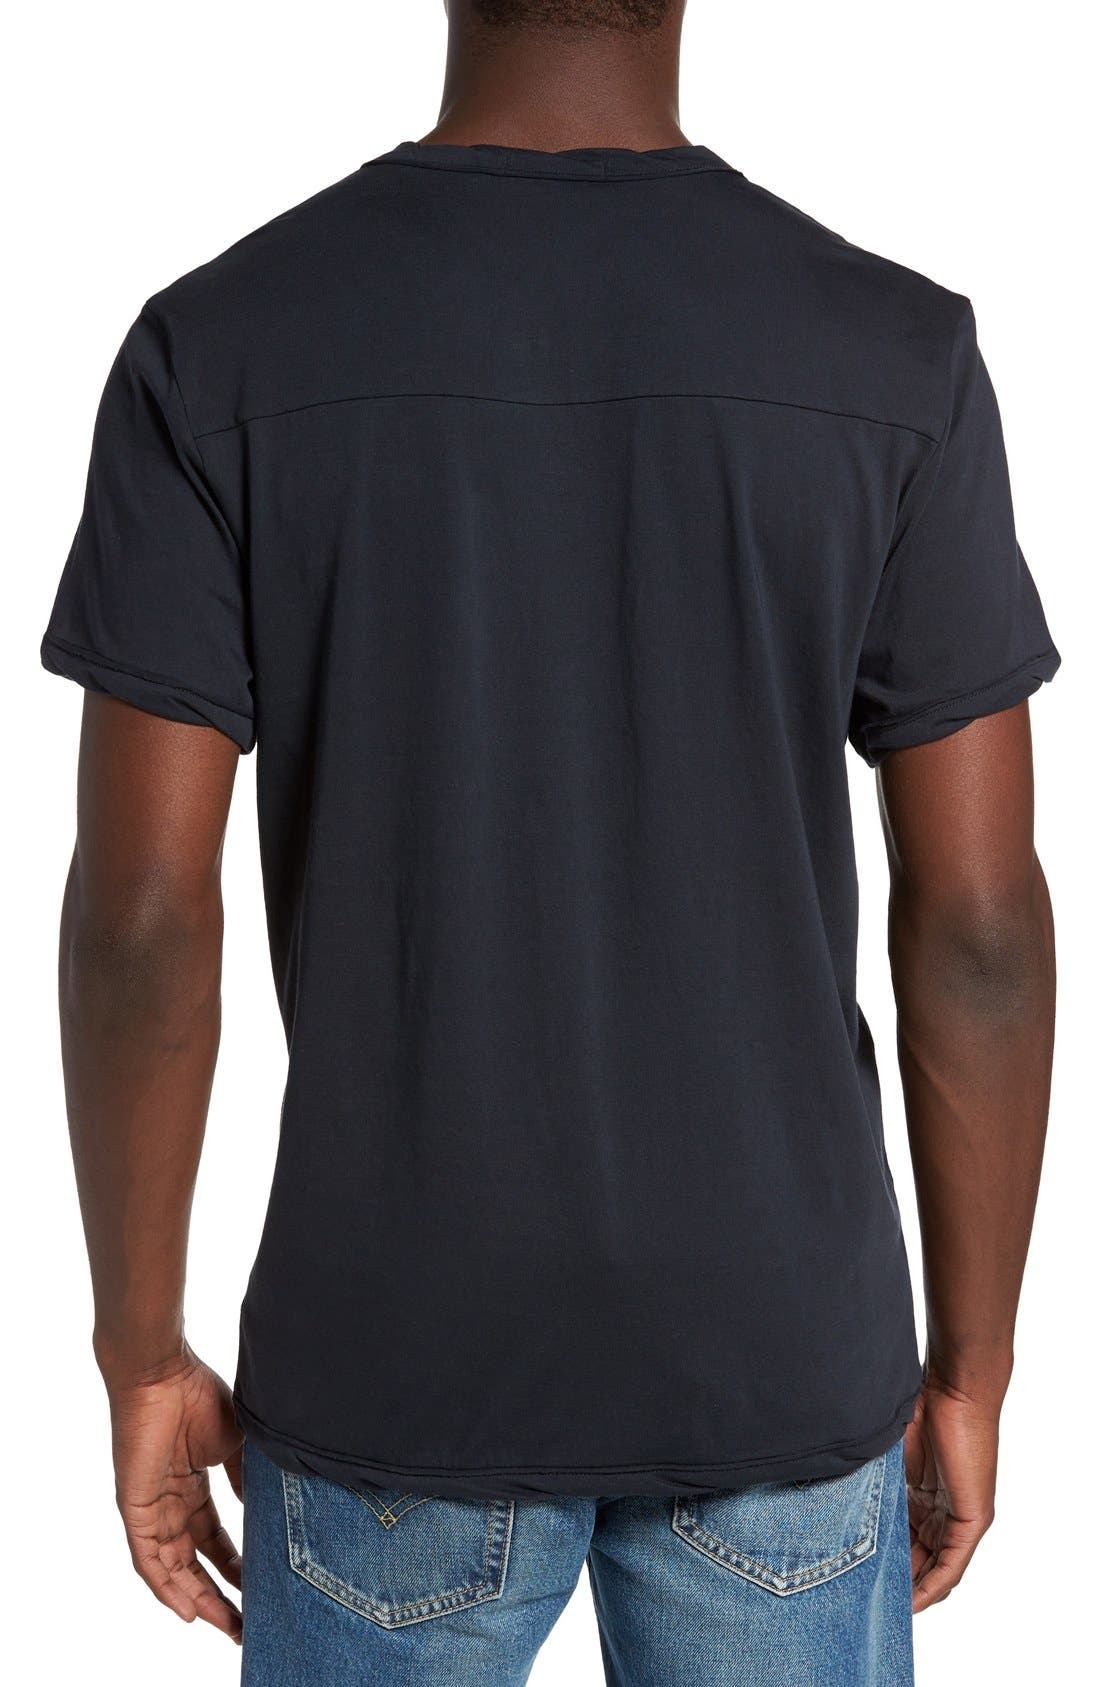 Alternate Image 2  - Alternative Notched Neck Organic Cotton T-Shirt